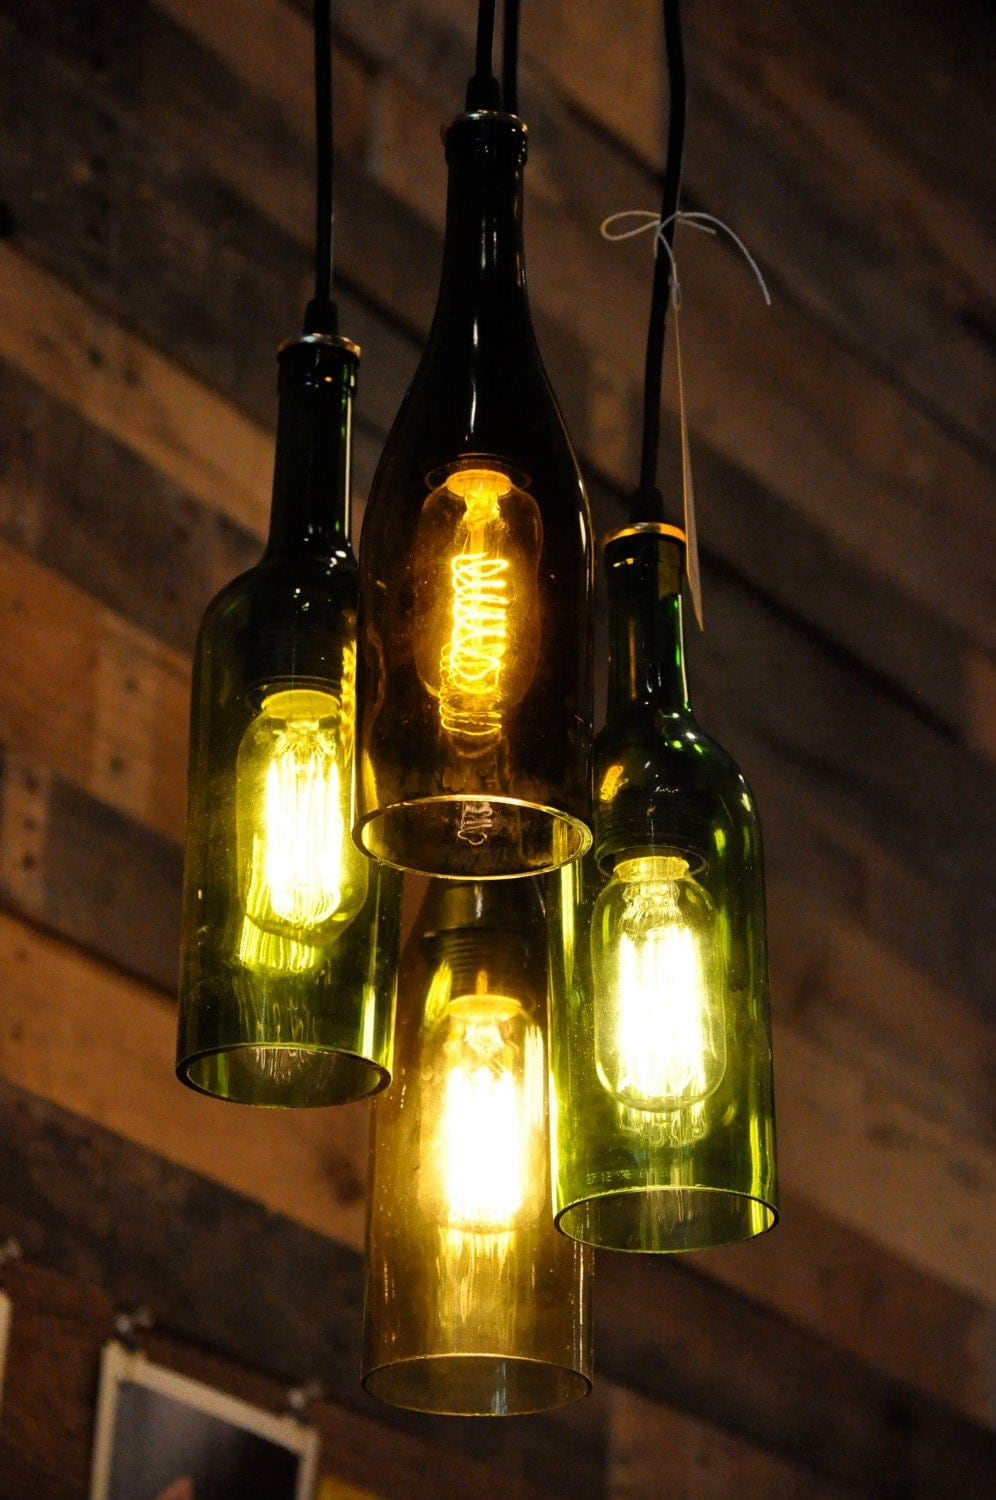 4 light chandelier recycled wine bottle pendant by moonshinelamp - Wine bottle pendant light ...